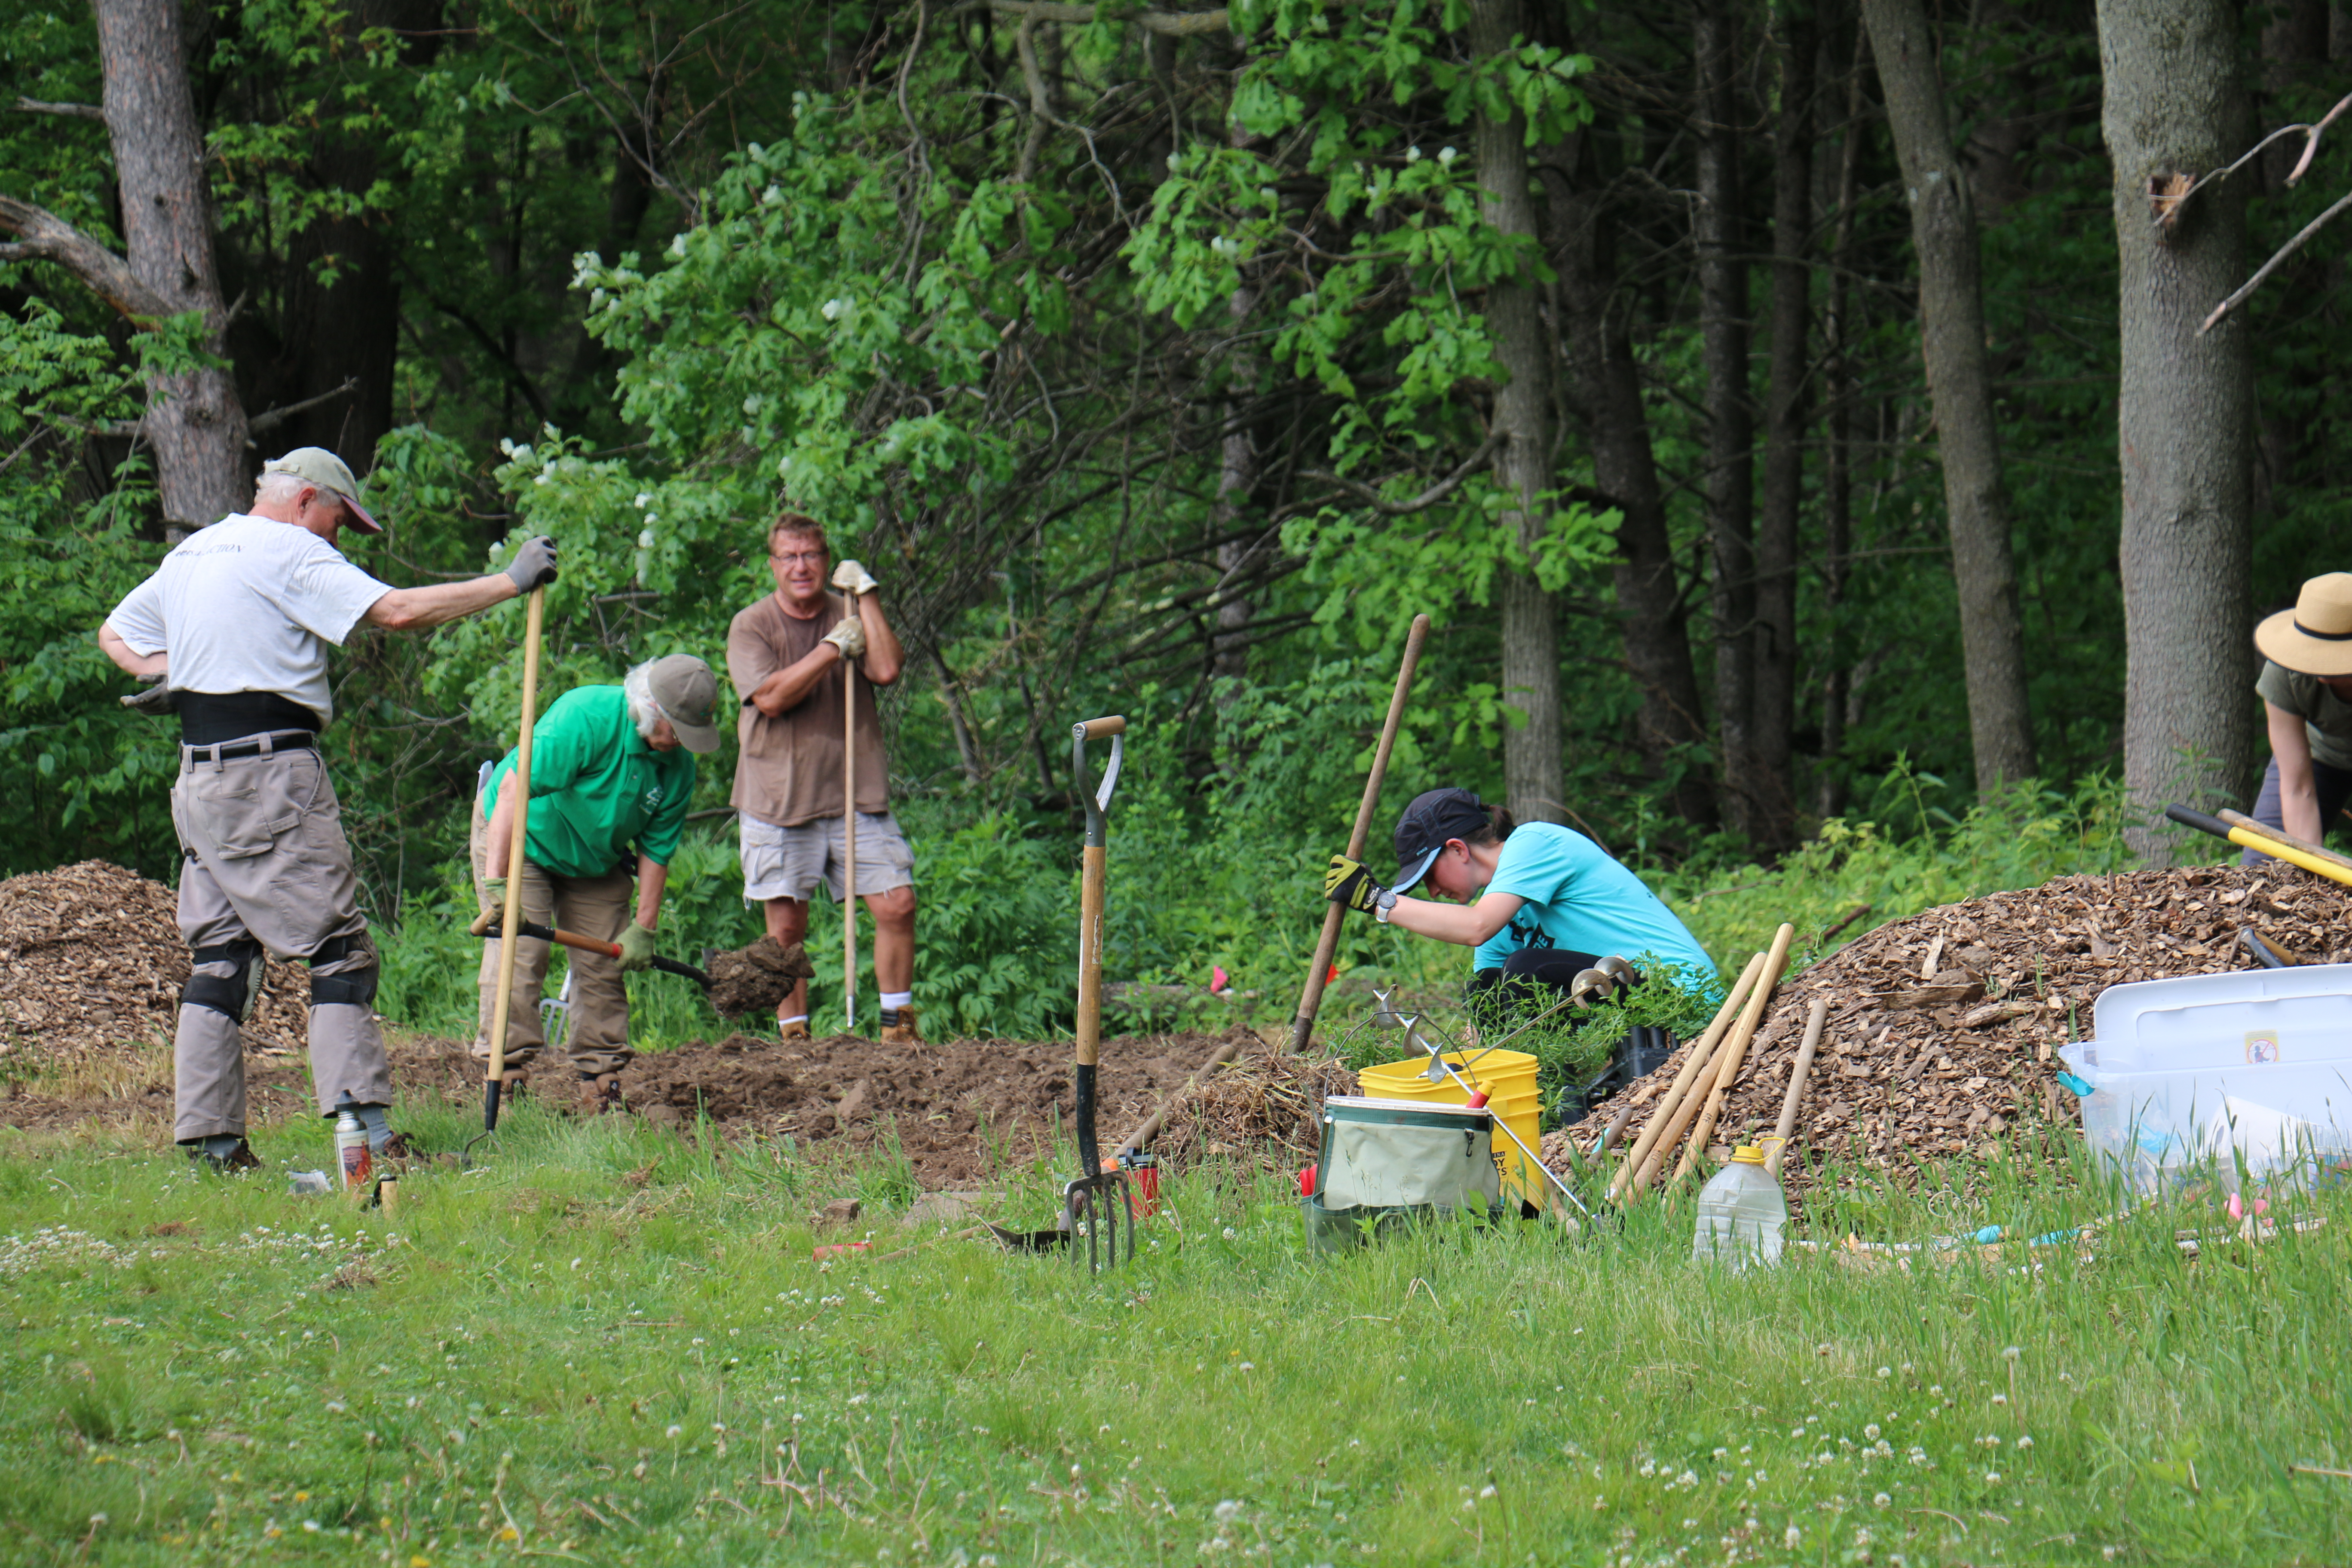 May 23, 2021 Native Plant Event